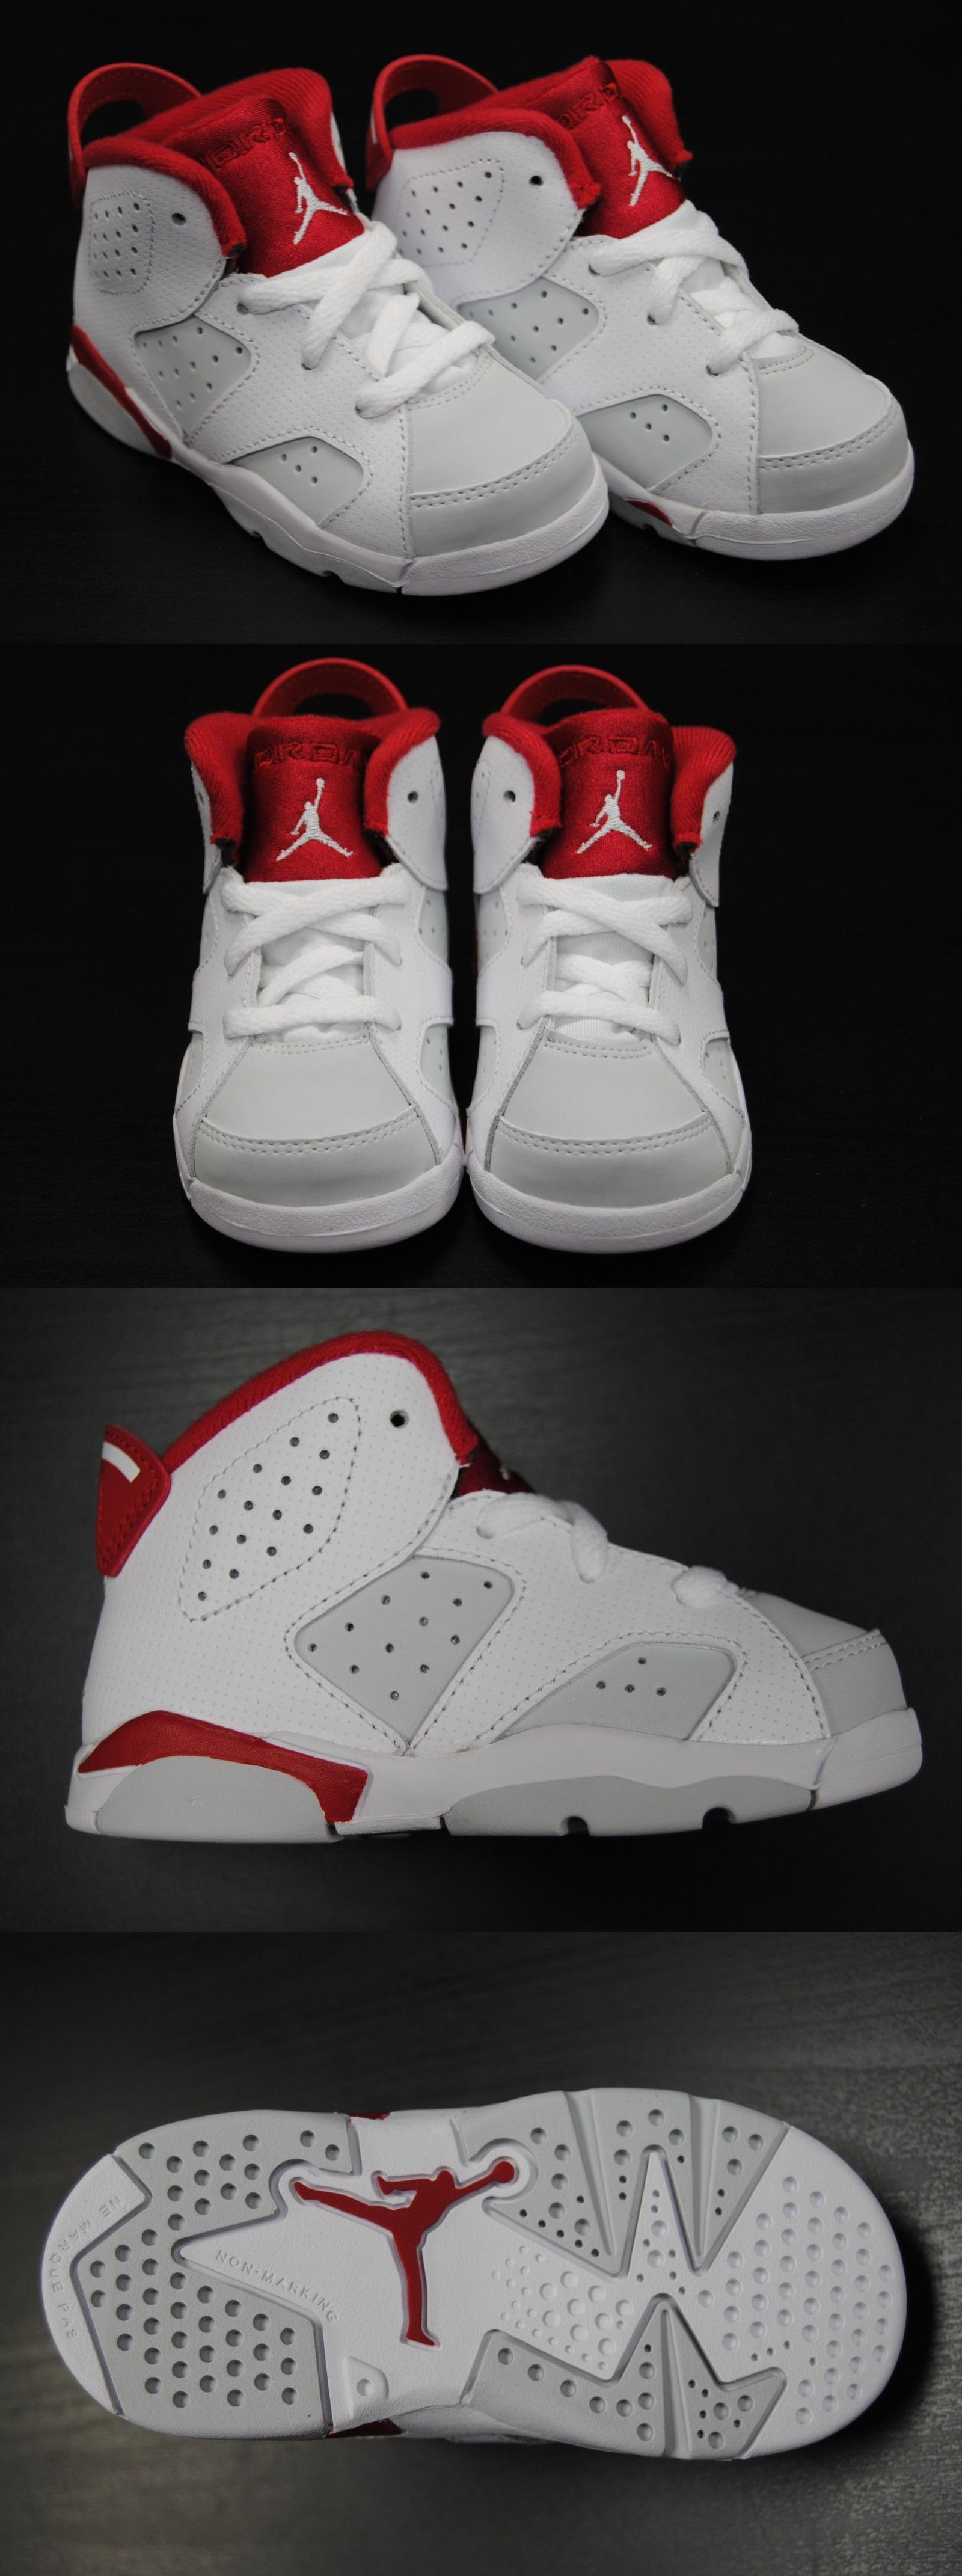 bc443ed593756a Baby Shoes 147285   384667 113  New Toddler Air Jordan 6 Retro Bt Alternate  Hare White Red Jb1265 -  BUY IT NOW ONLY   50 on eBay!